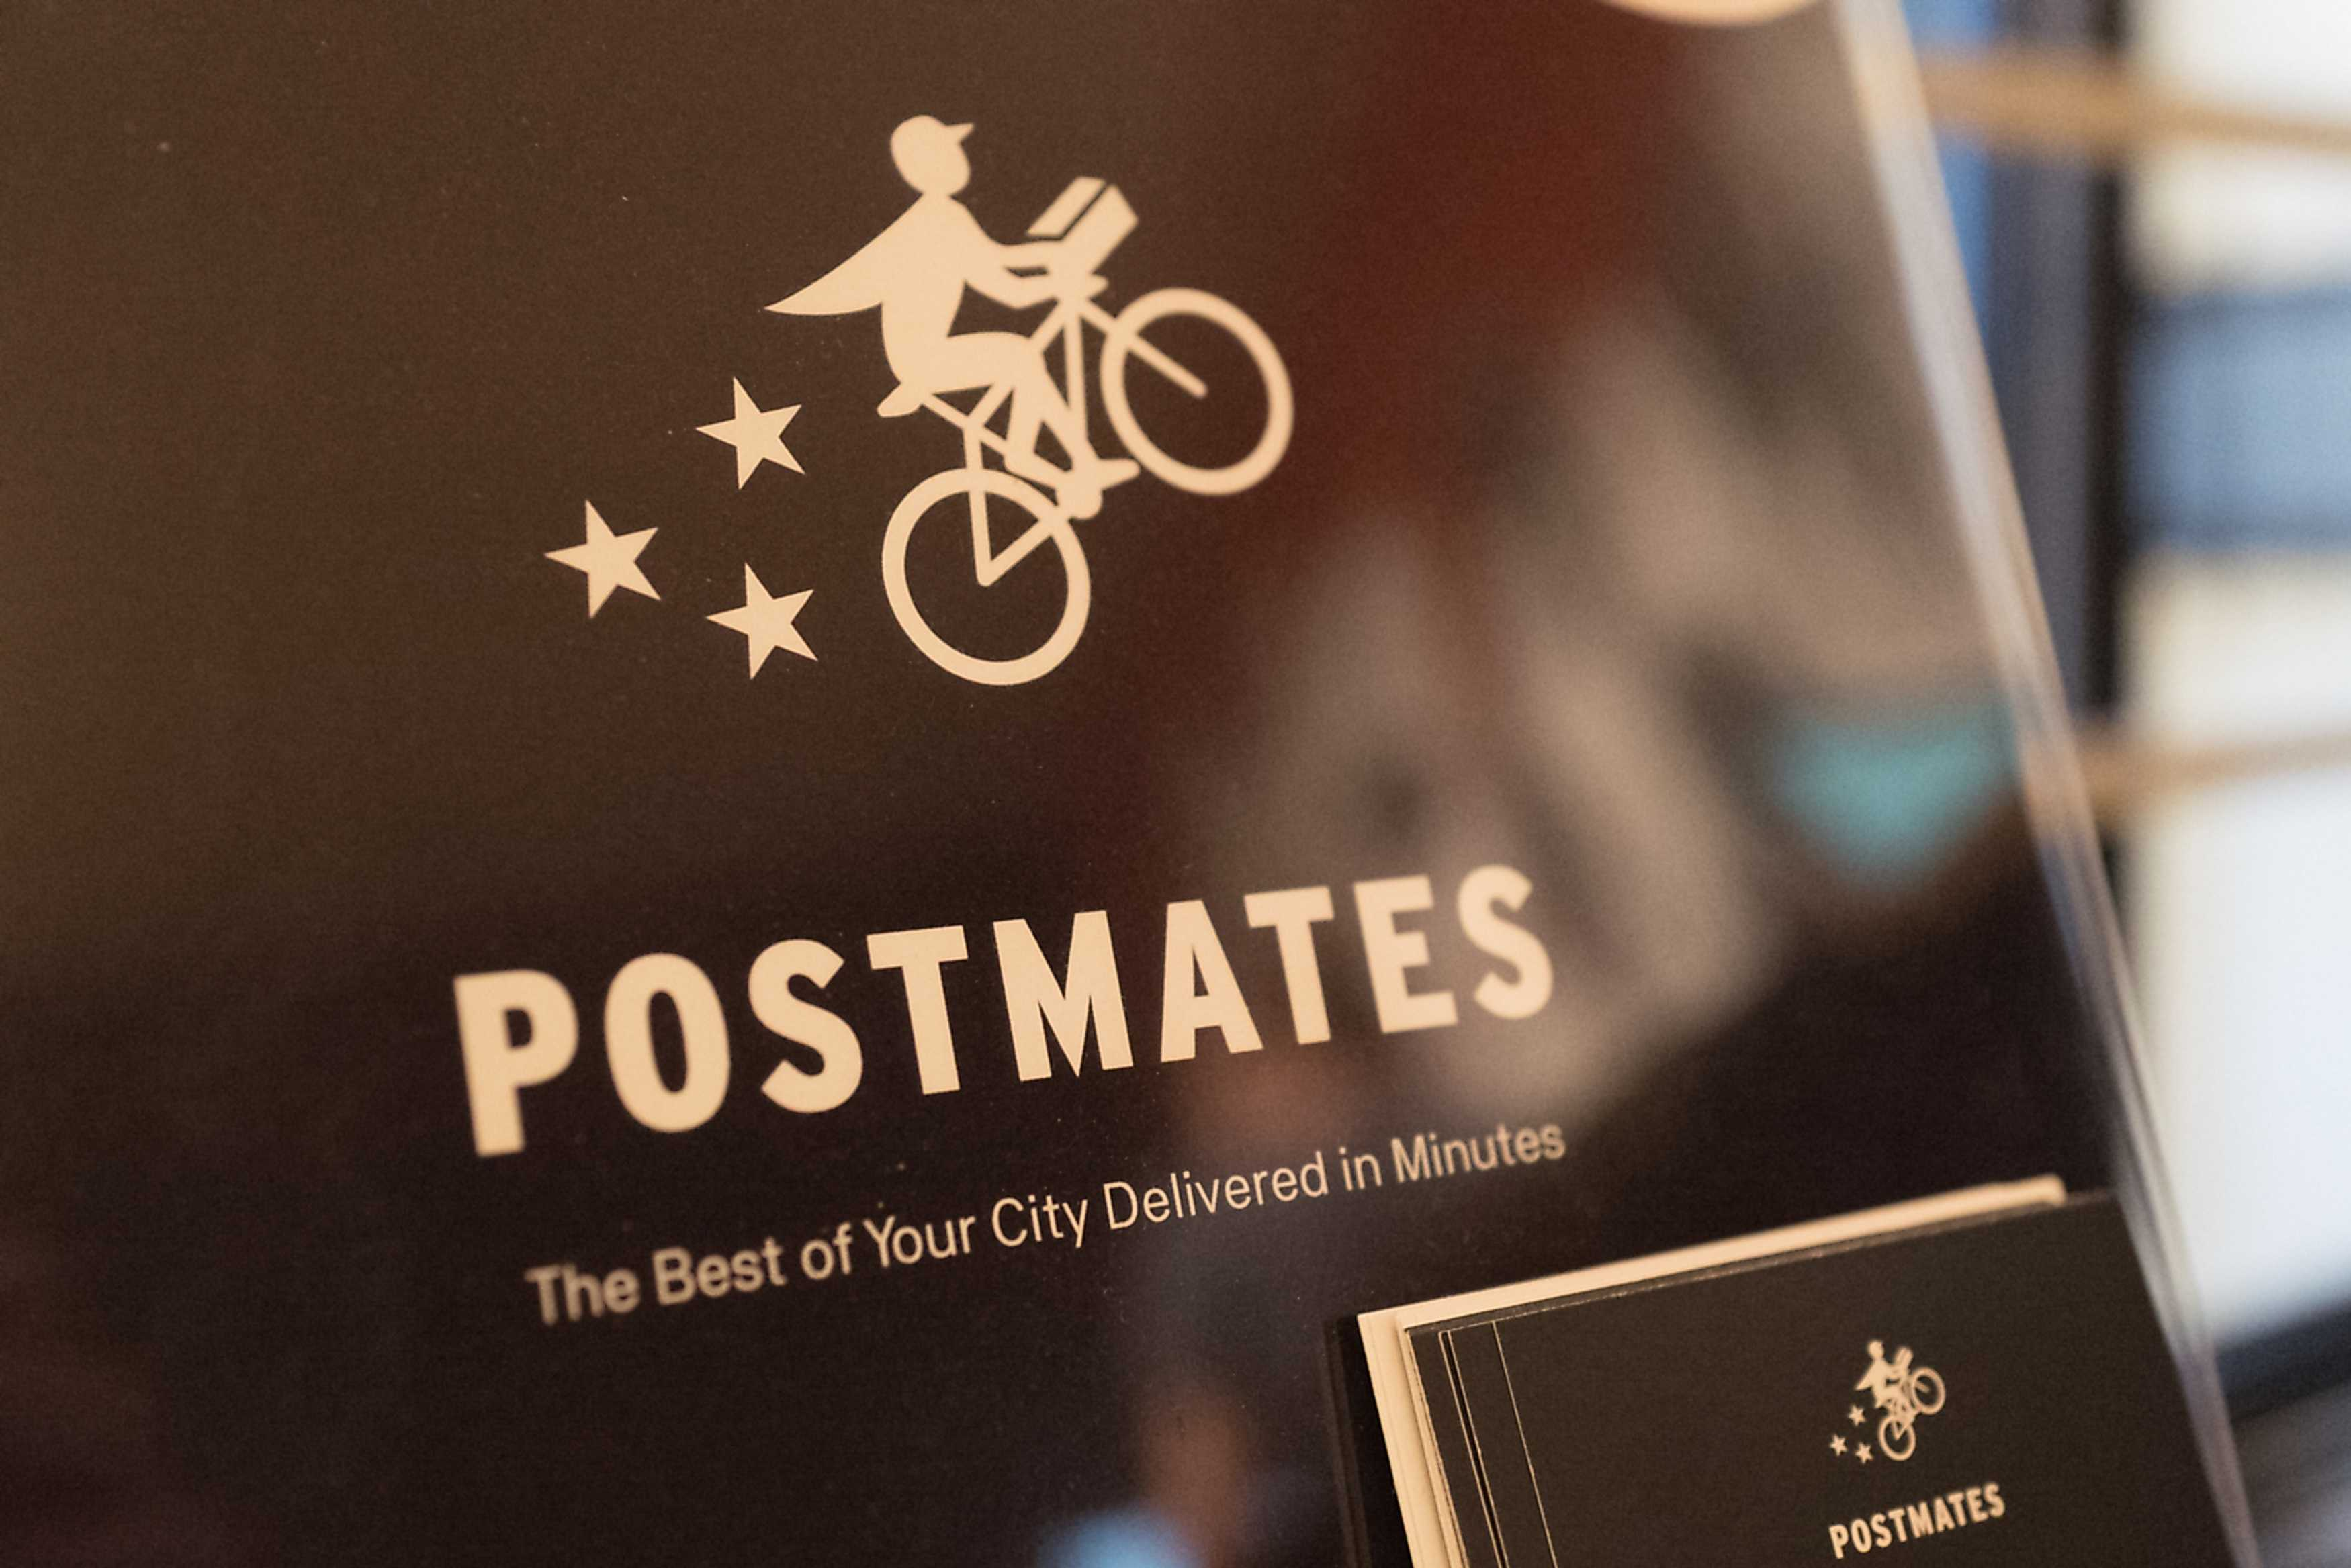 Ford to partner with Postmates on self-driving deliveries